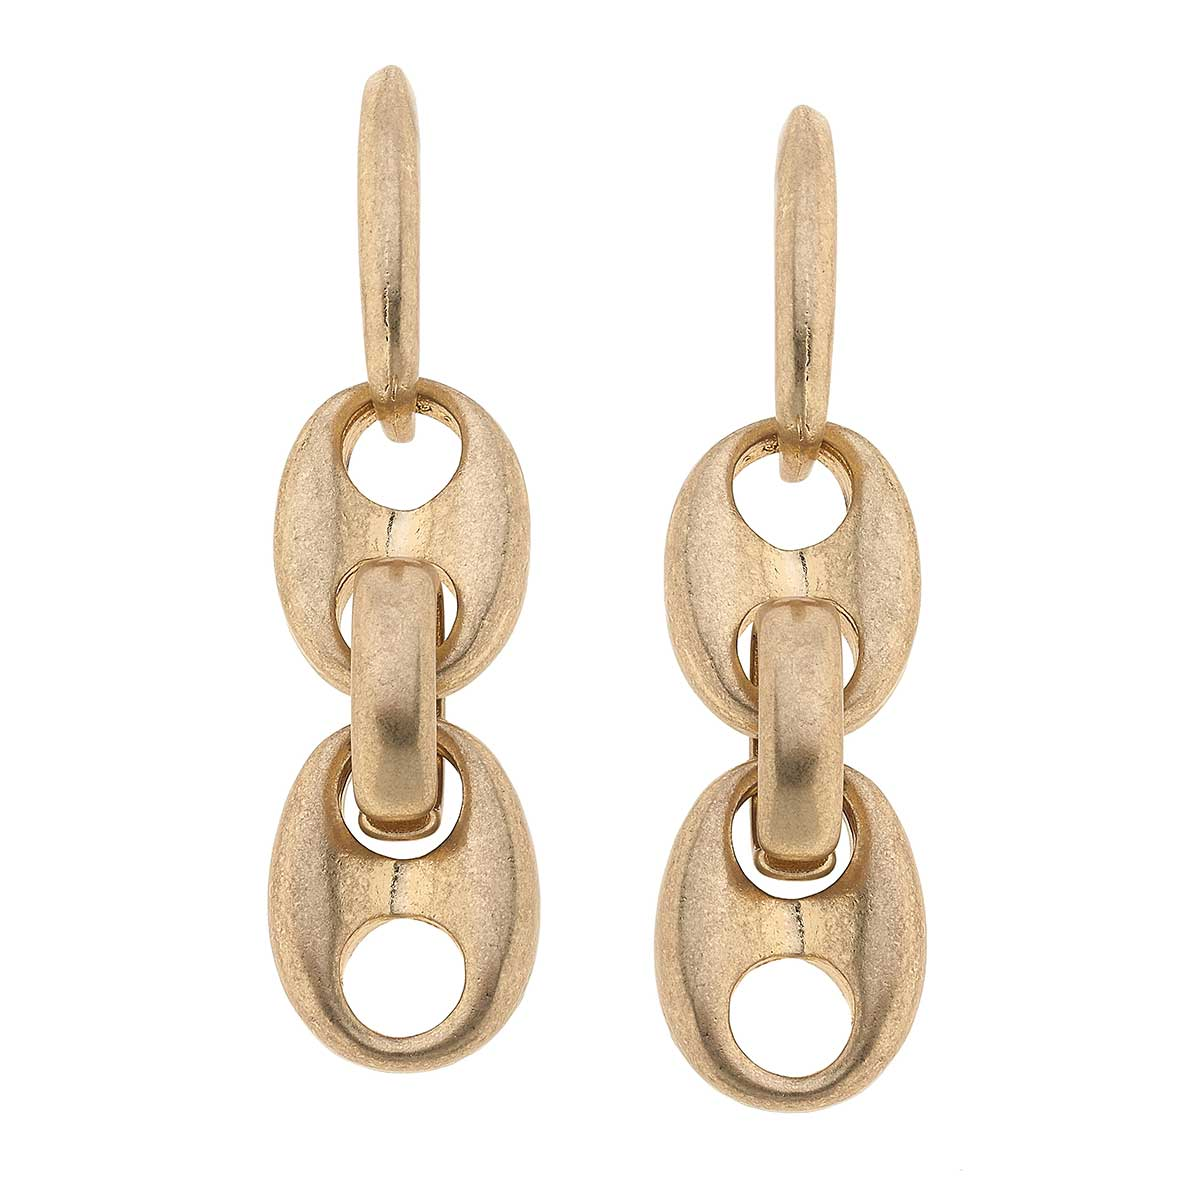 Ingrid Linked Chain Earrings in Worn Gold